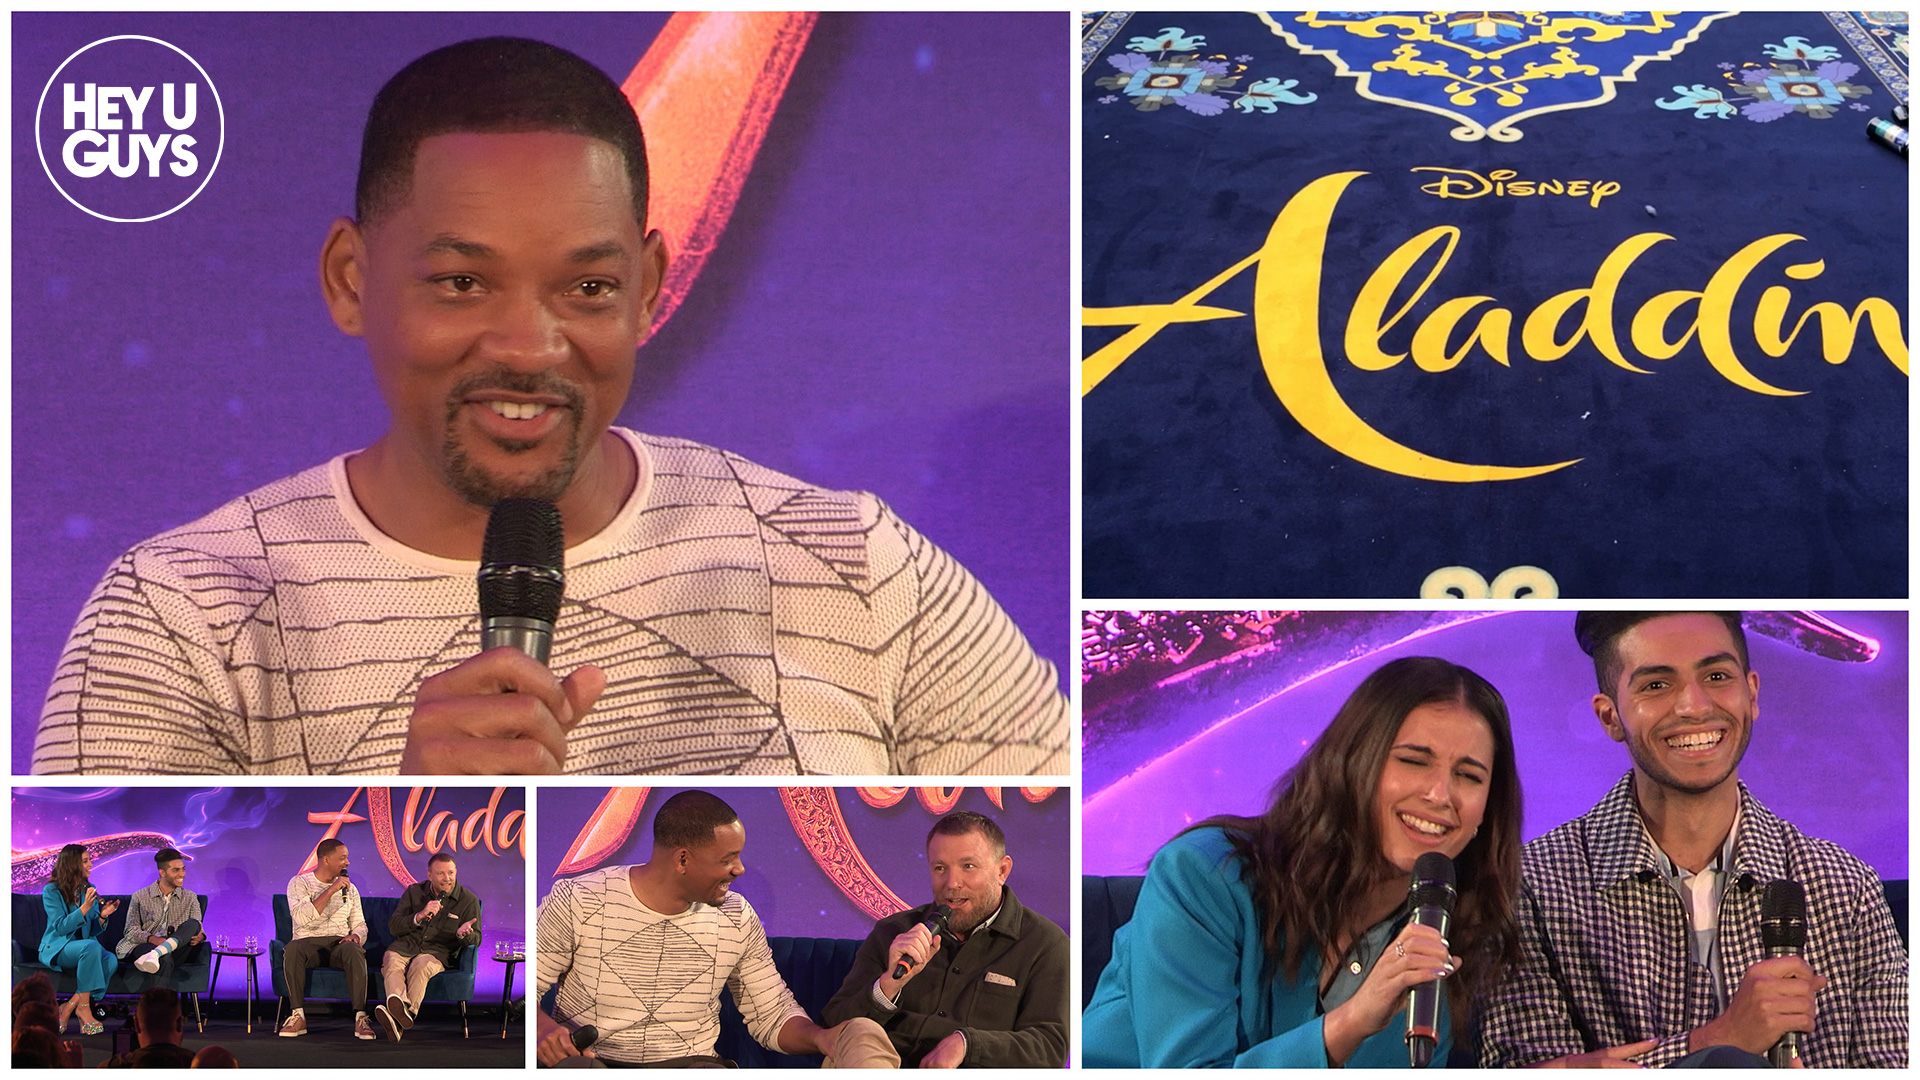 aladdin-press-conference-will-smith